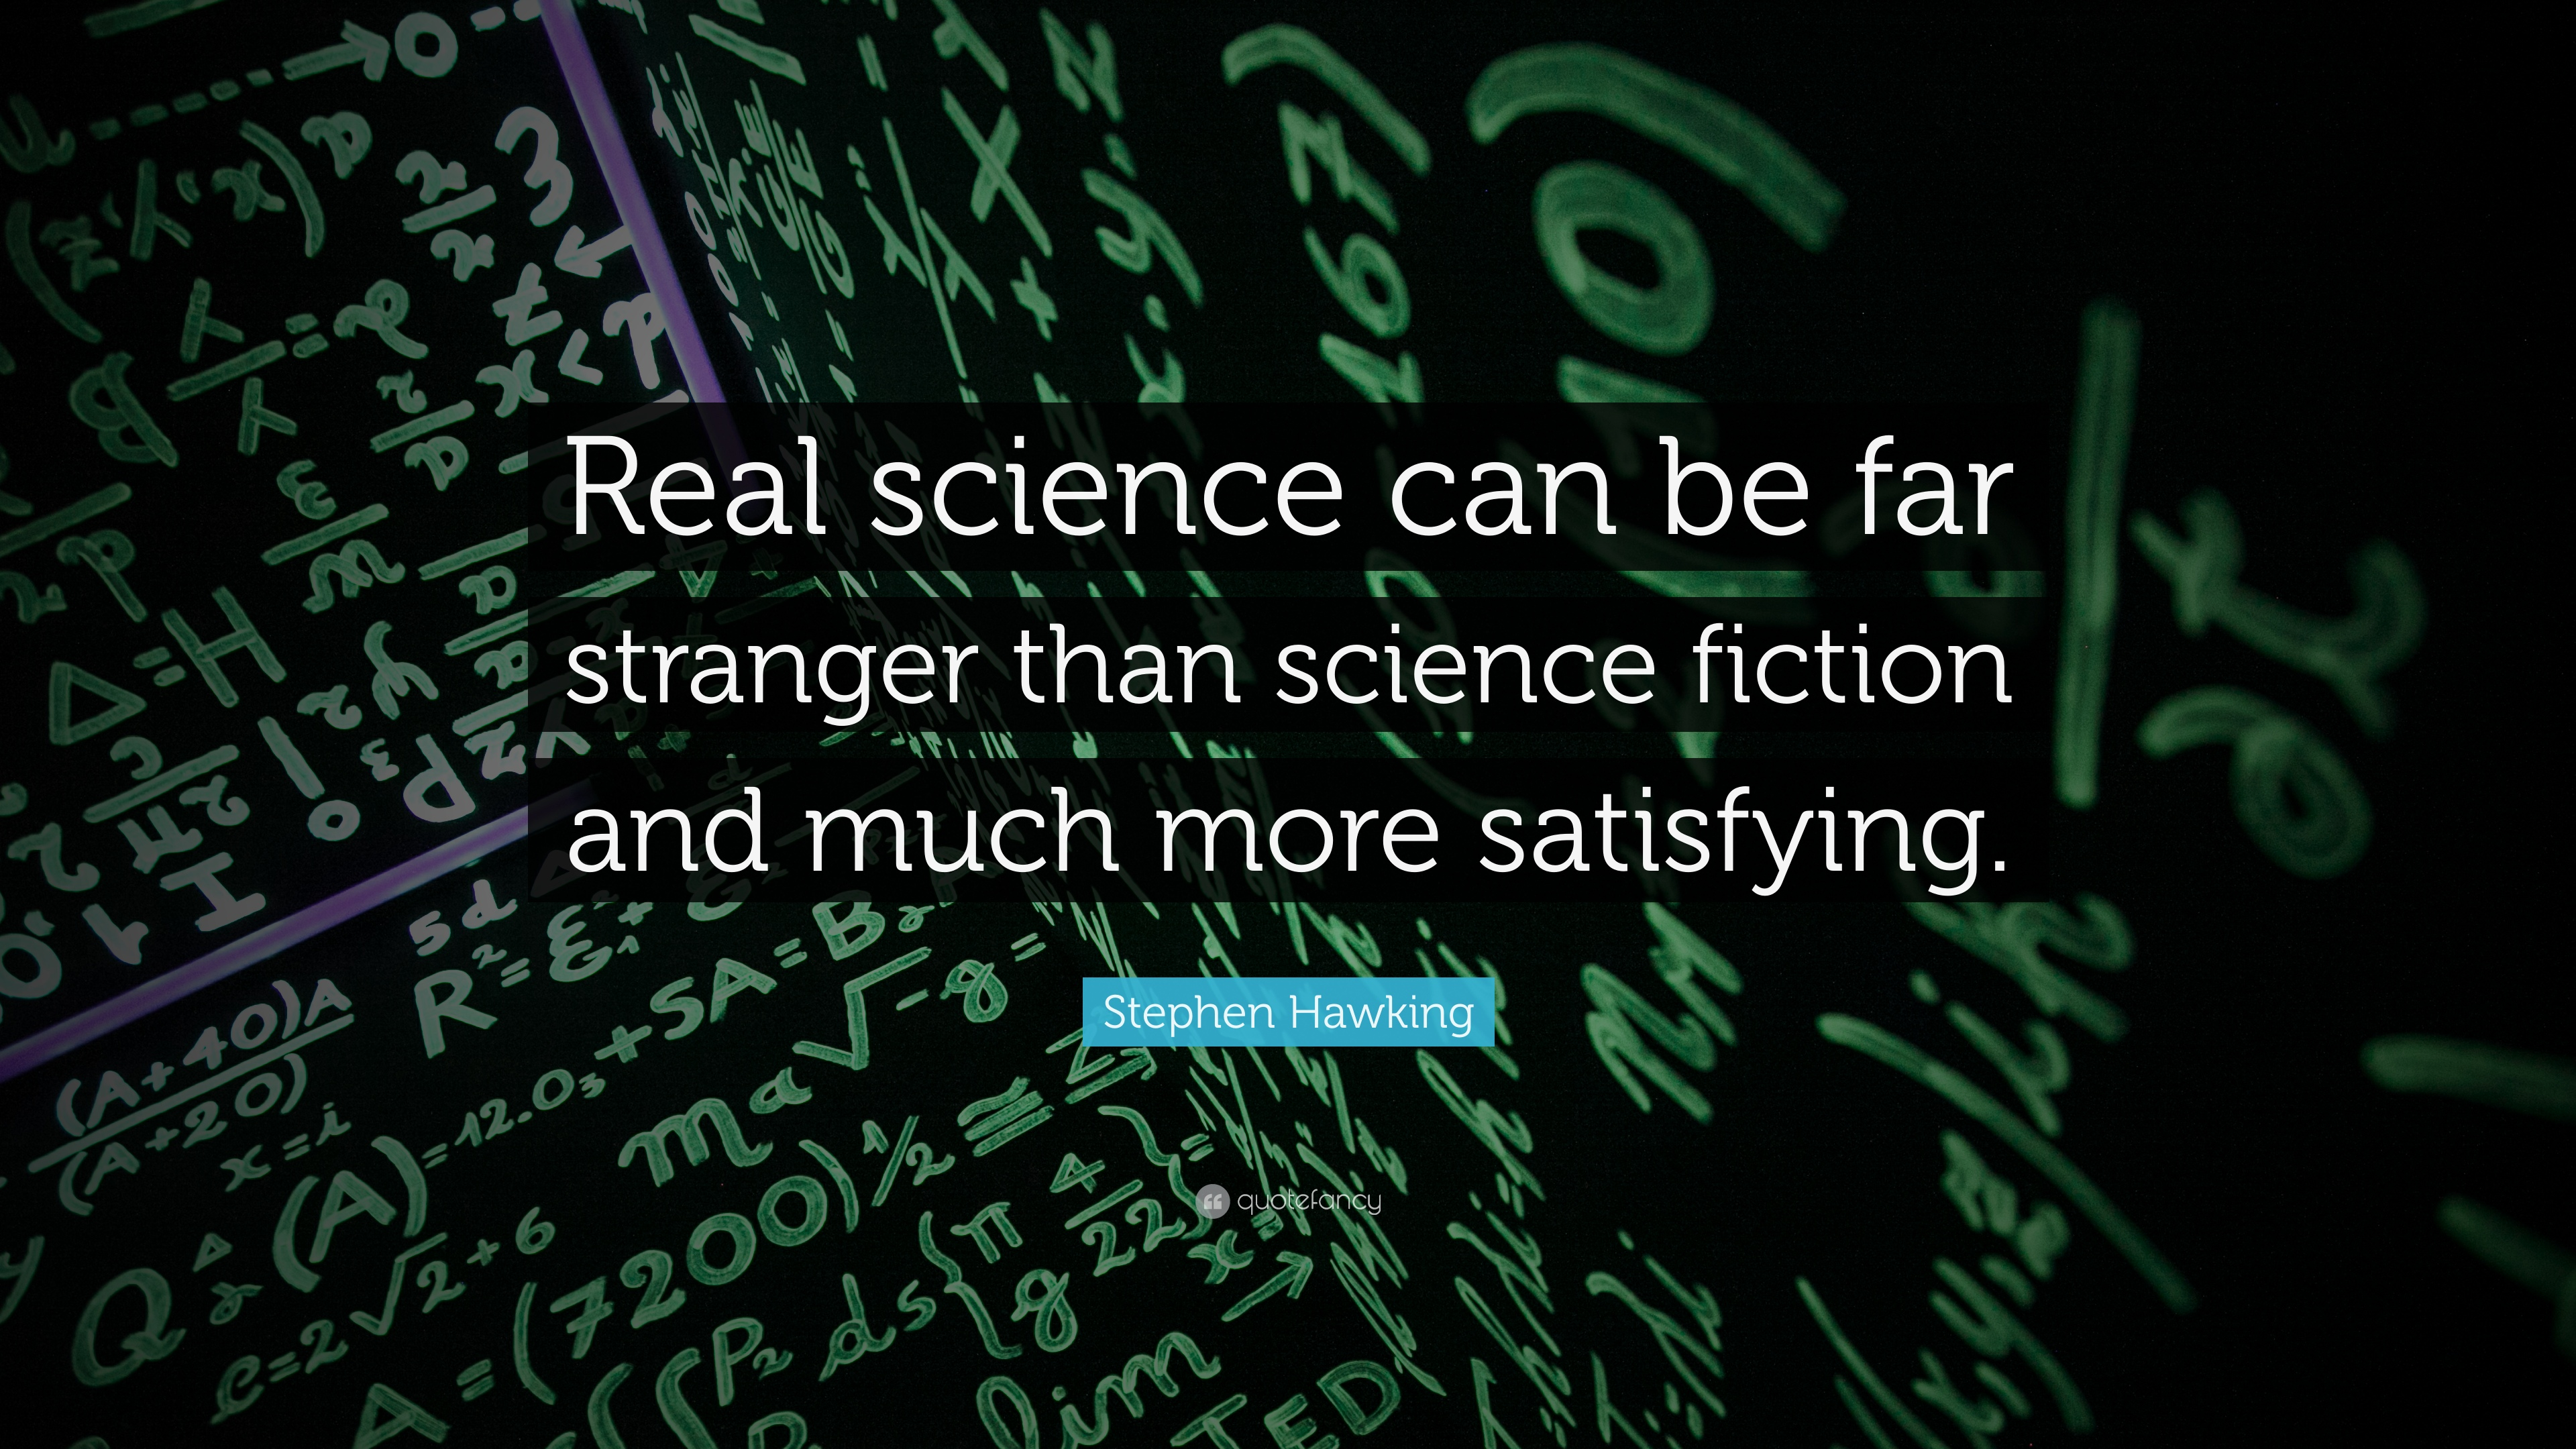 science hawking stephen fiction quotes quote stranger than wallpapers far much satisfying scientific quotefancy genius subliminal